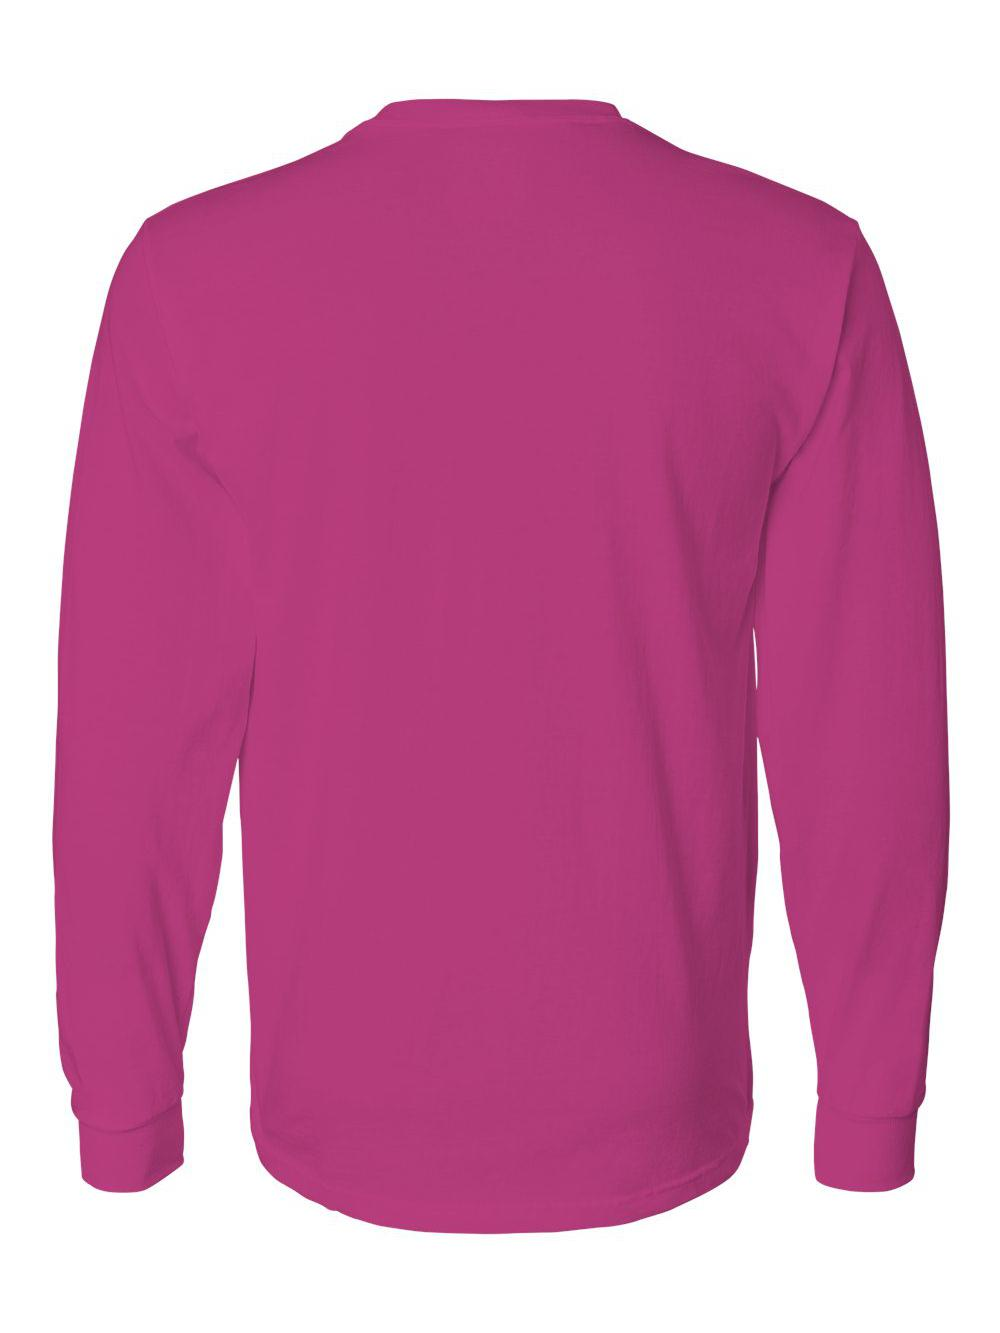 Fruit-of-the-Loom-HD-Cotton-Long-Sleeve-T-Shirt-4930R thumbnail 31